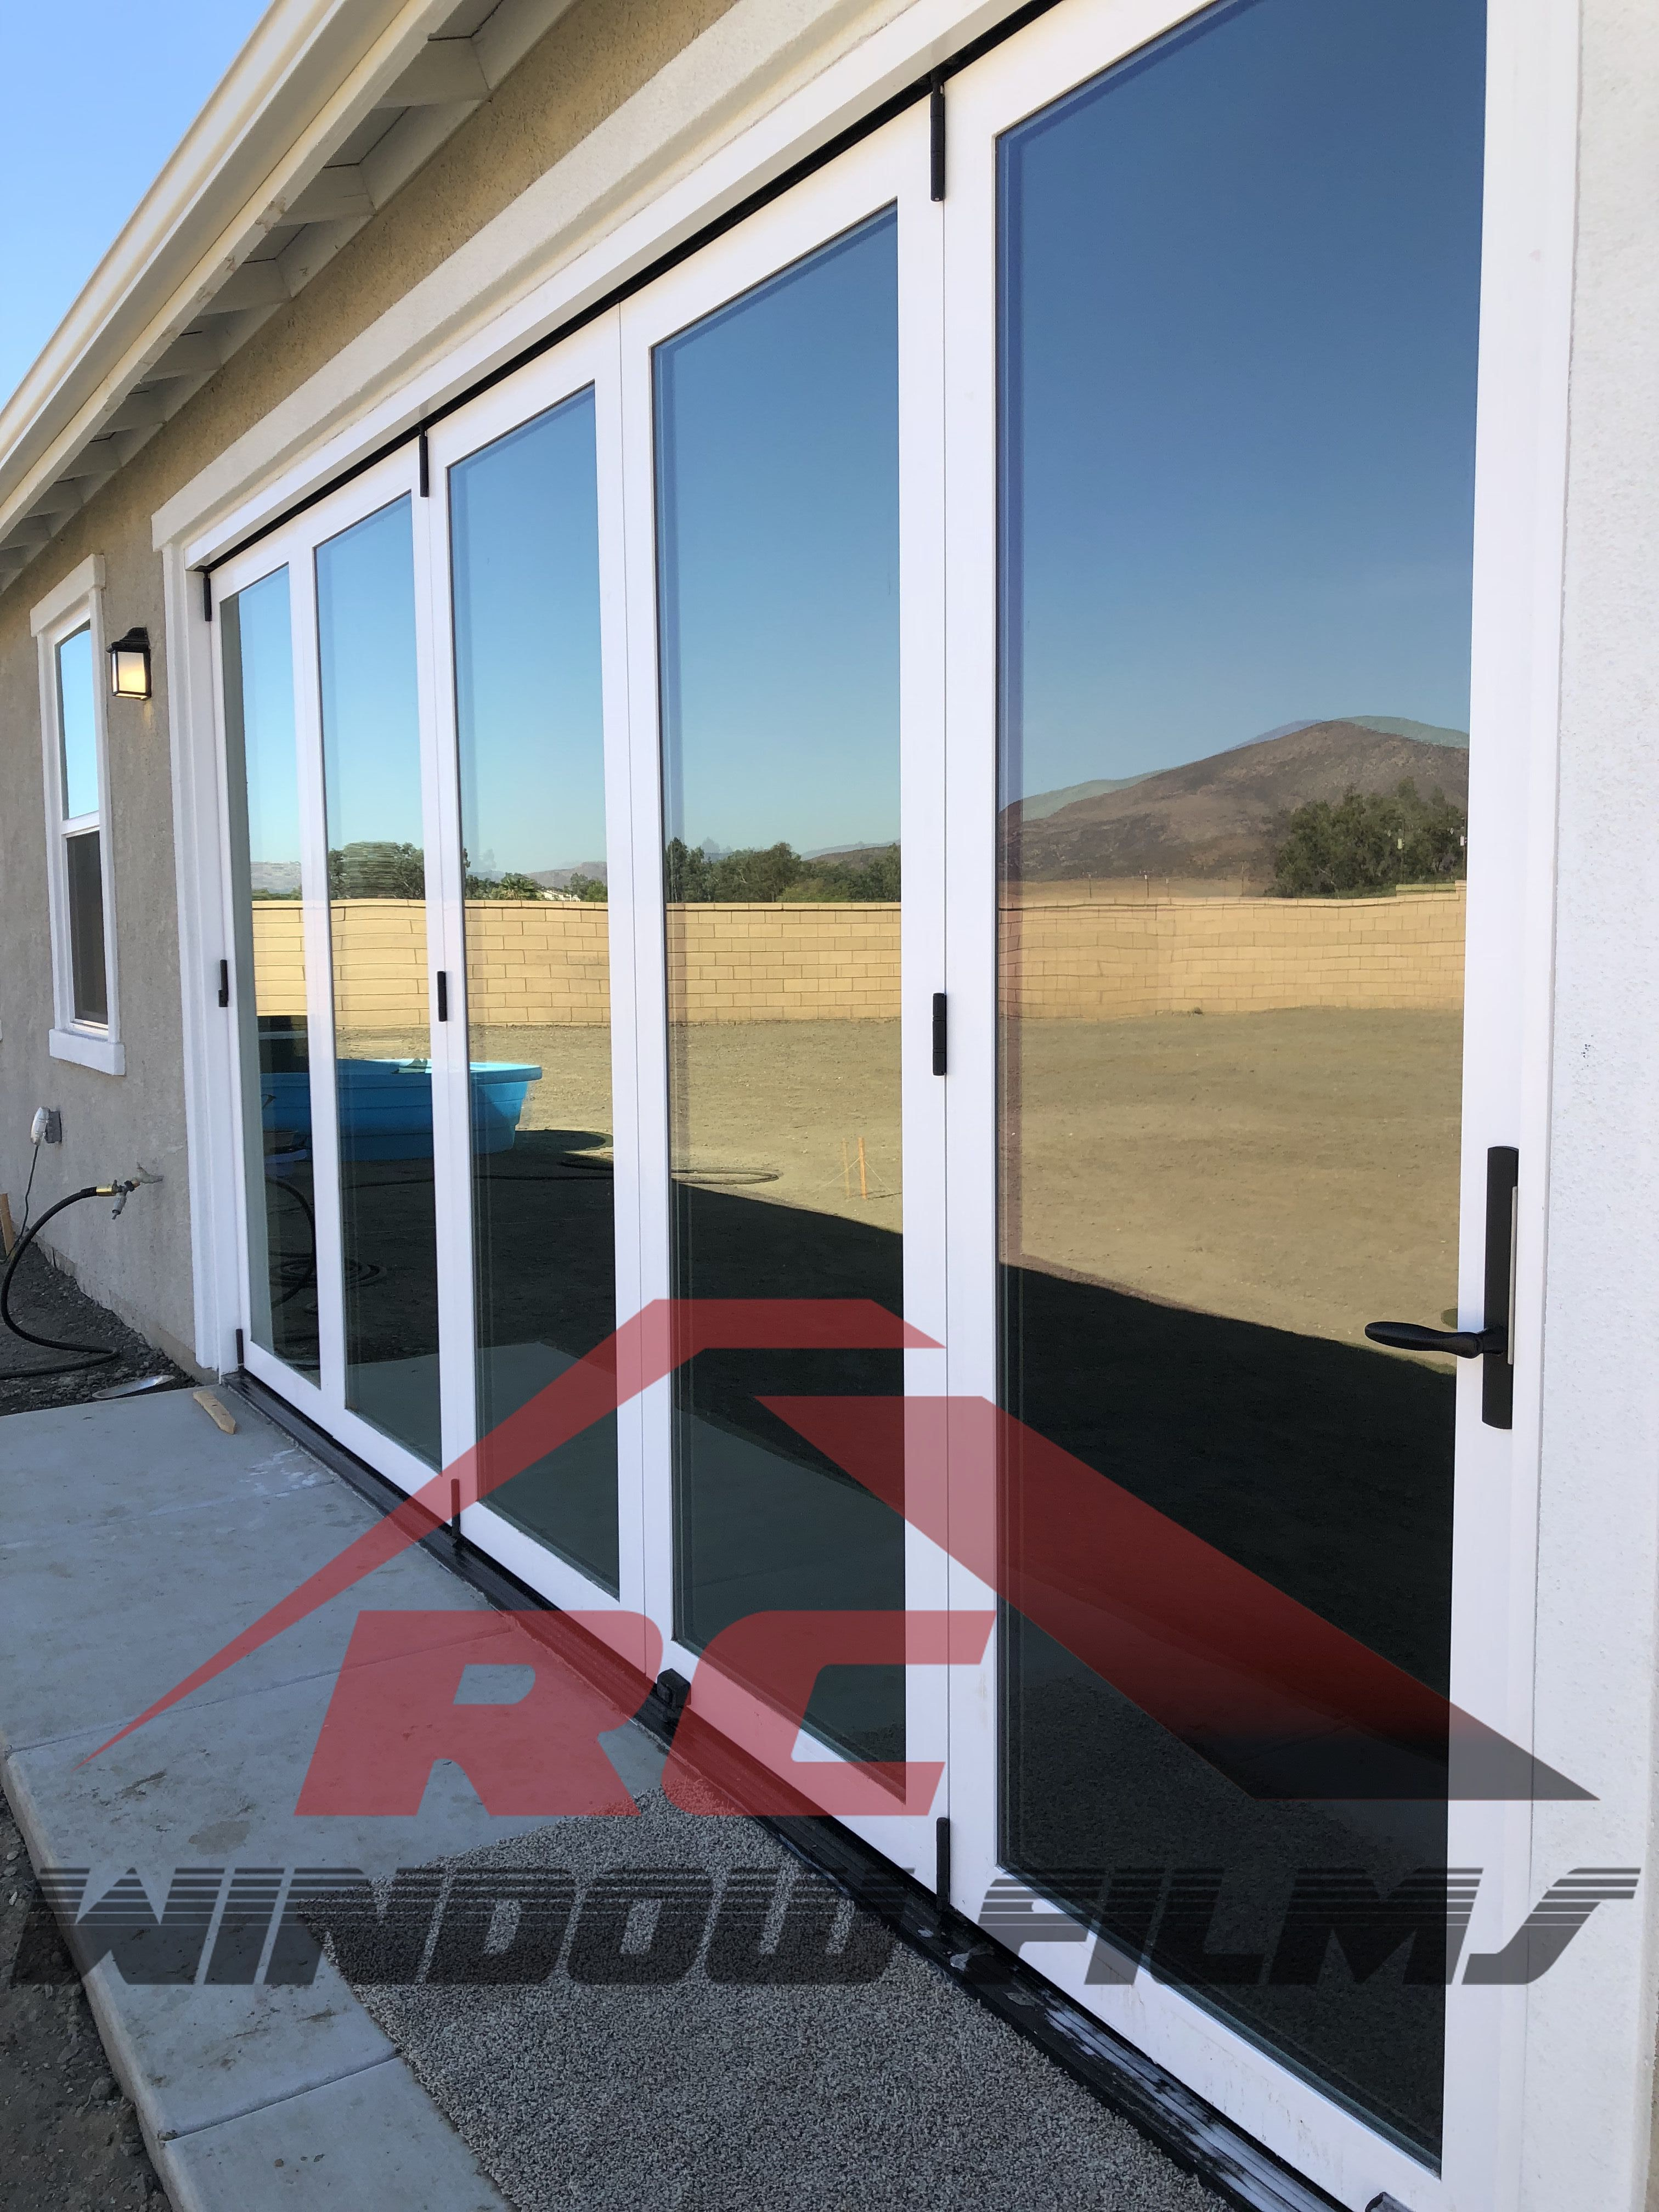 Home Window Tinting In Temecula Ca Can Help Reduce Heat And Glare